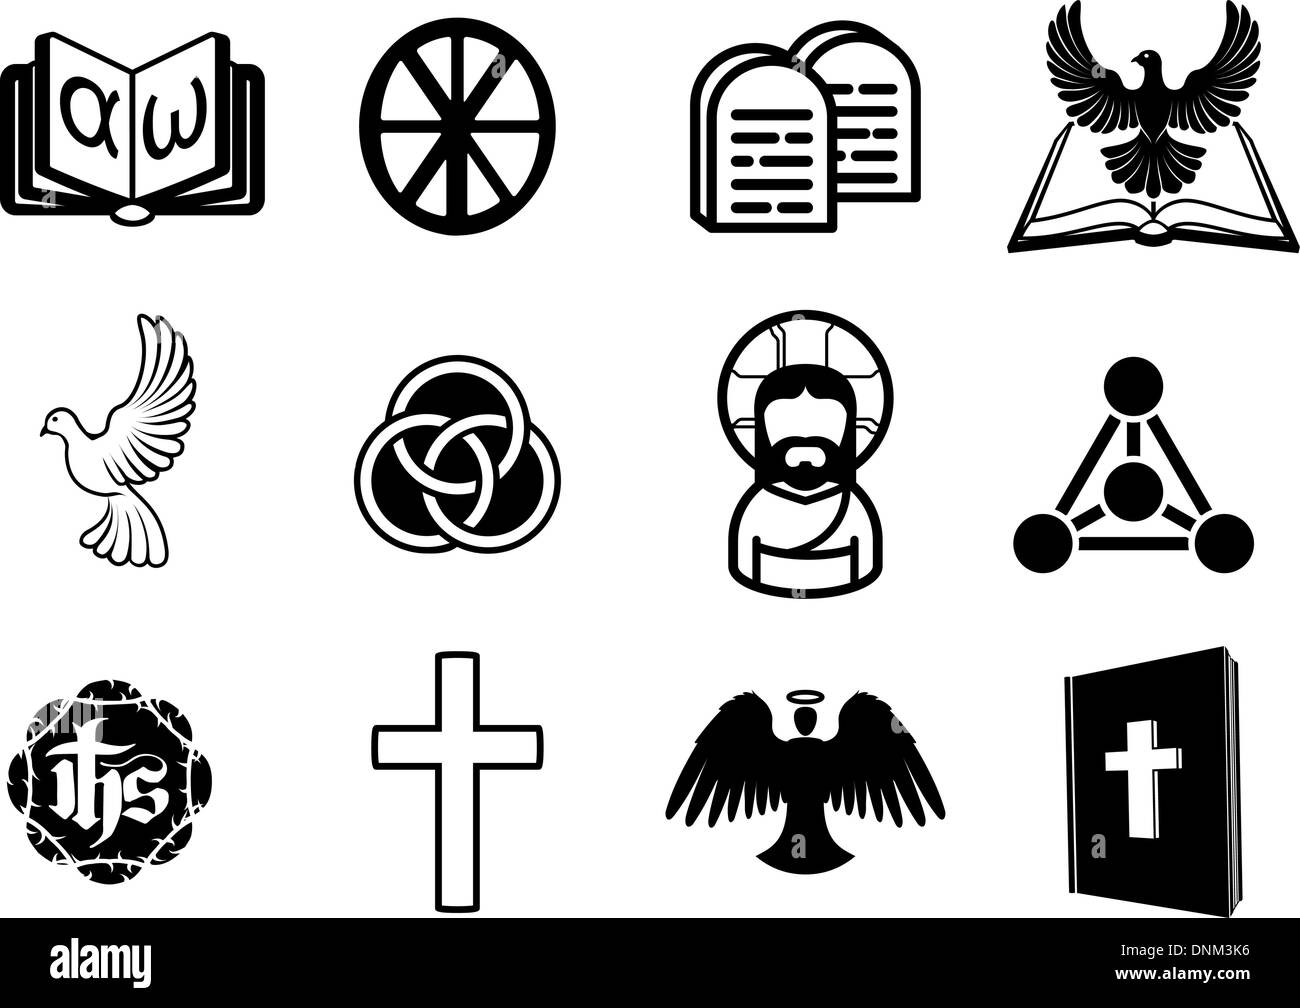 A christian religious icon set with signs and symbols related to christian house permission signs set a christian religious icon set with signs and symbols related to christian themes stock photo biocorpaavc Choice Image